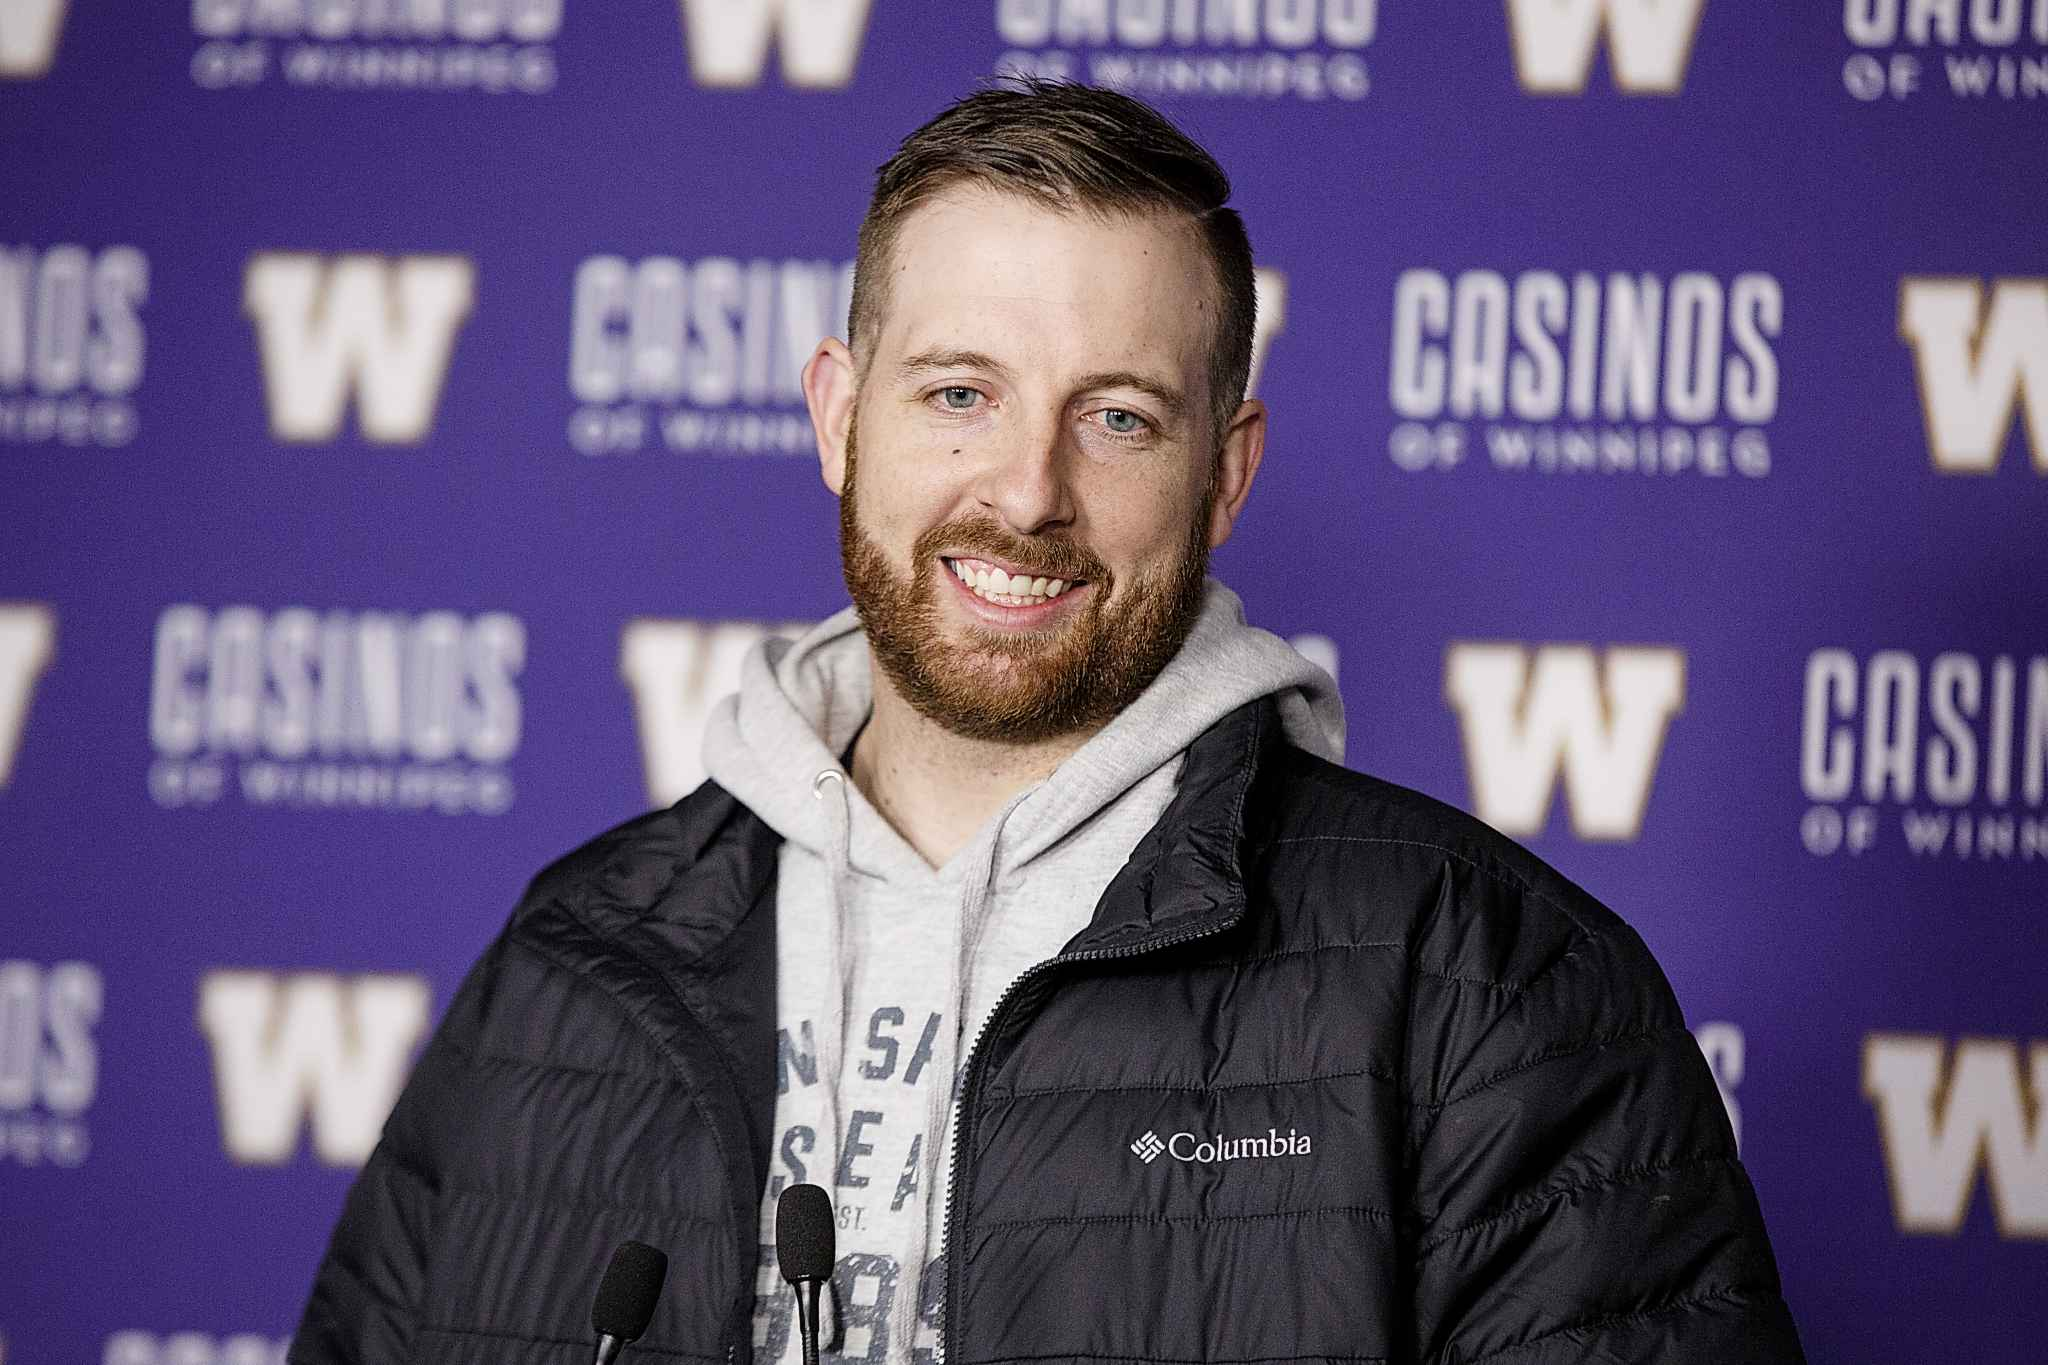 Winnipeg Blue Bombers quarterback Matt Nichols met with the media for the first time since the end of the 2018 season at Investors Group Field Thursday.